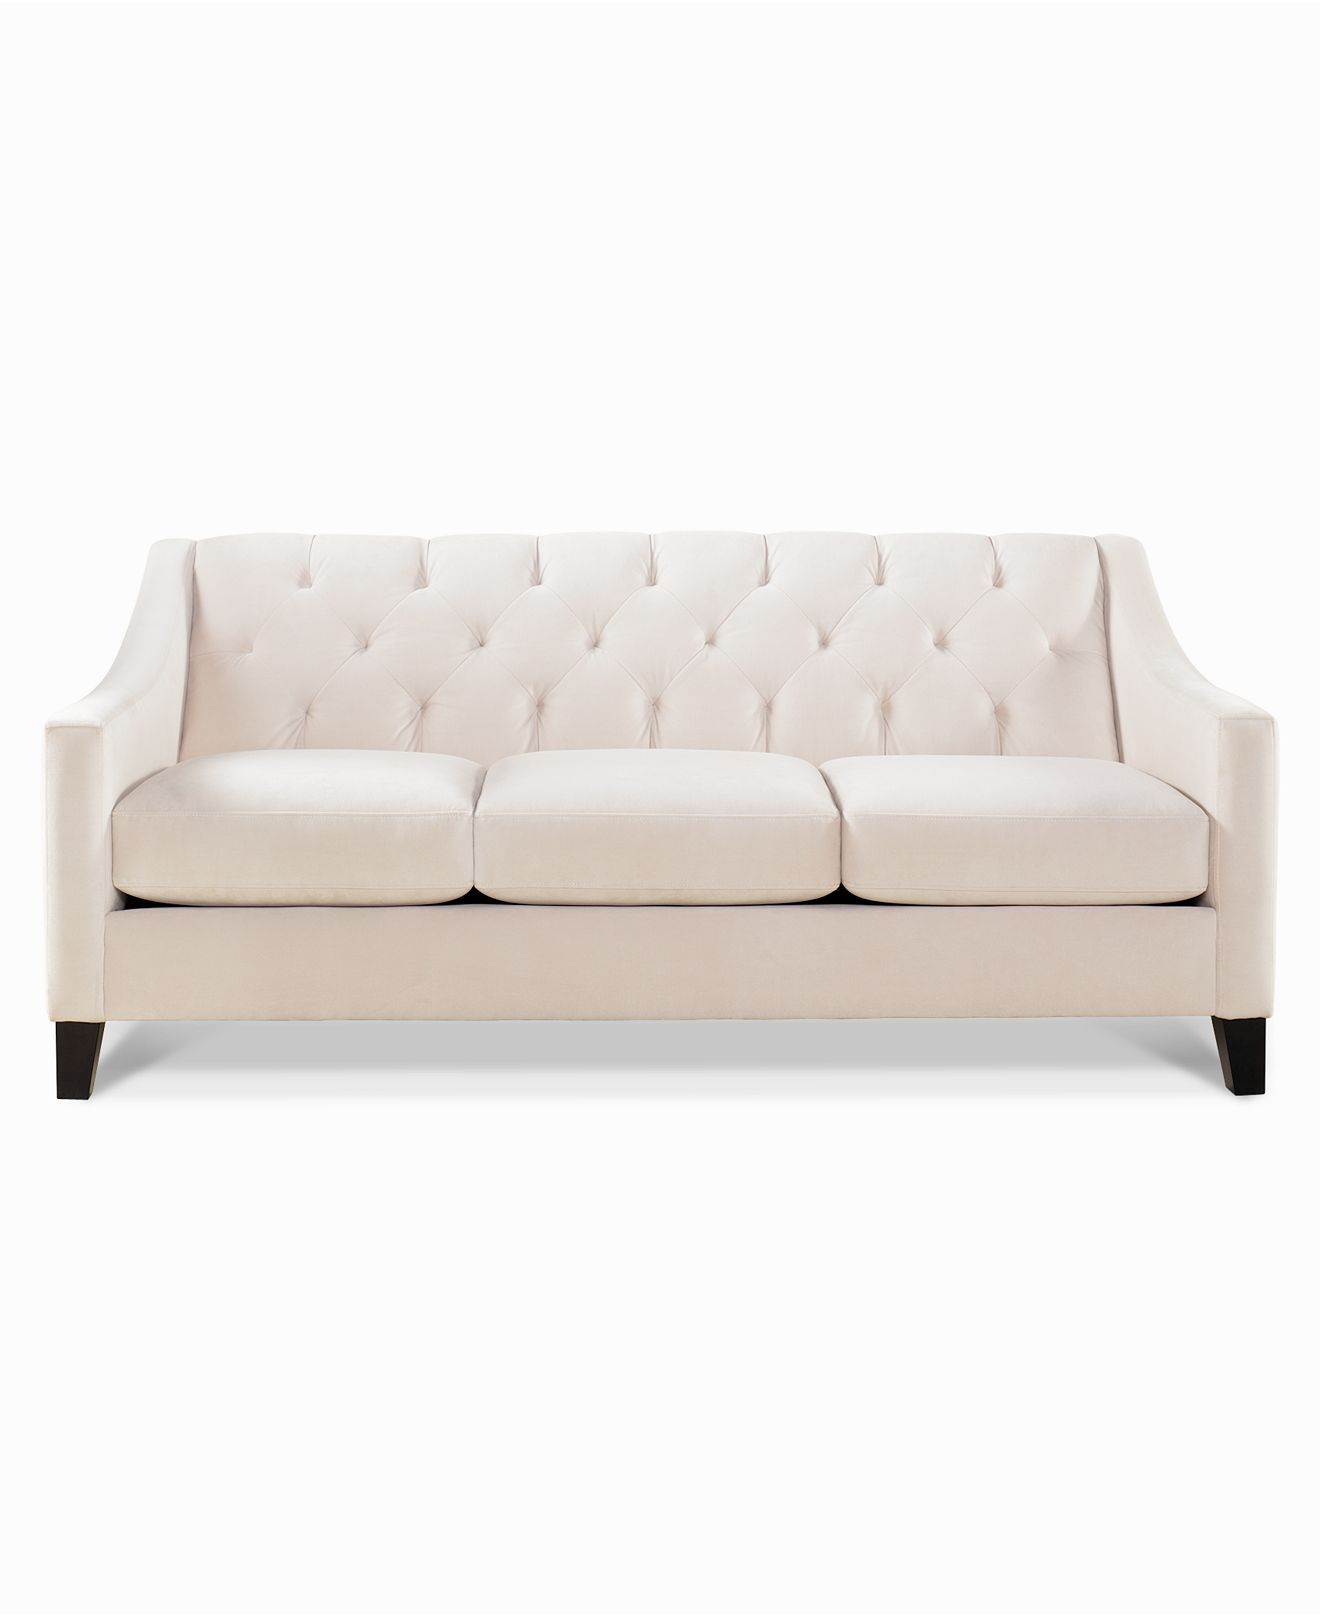 chloe velvet tufted sofa living room furniture collection cabinets storage metro classic button tufting and a